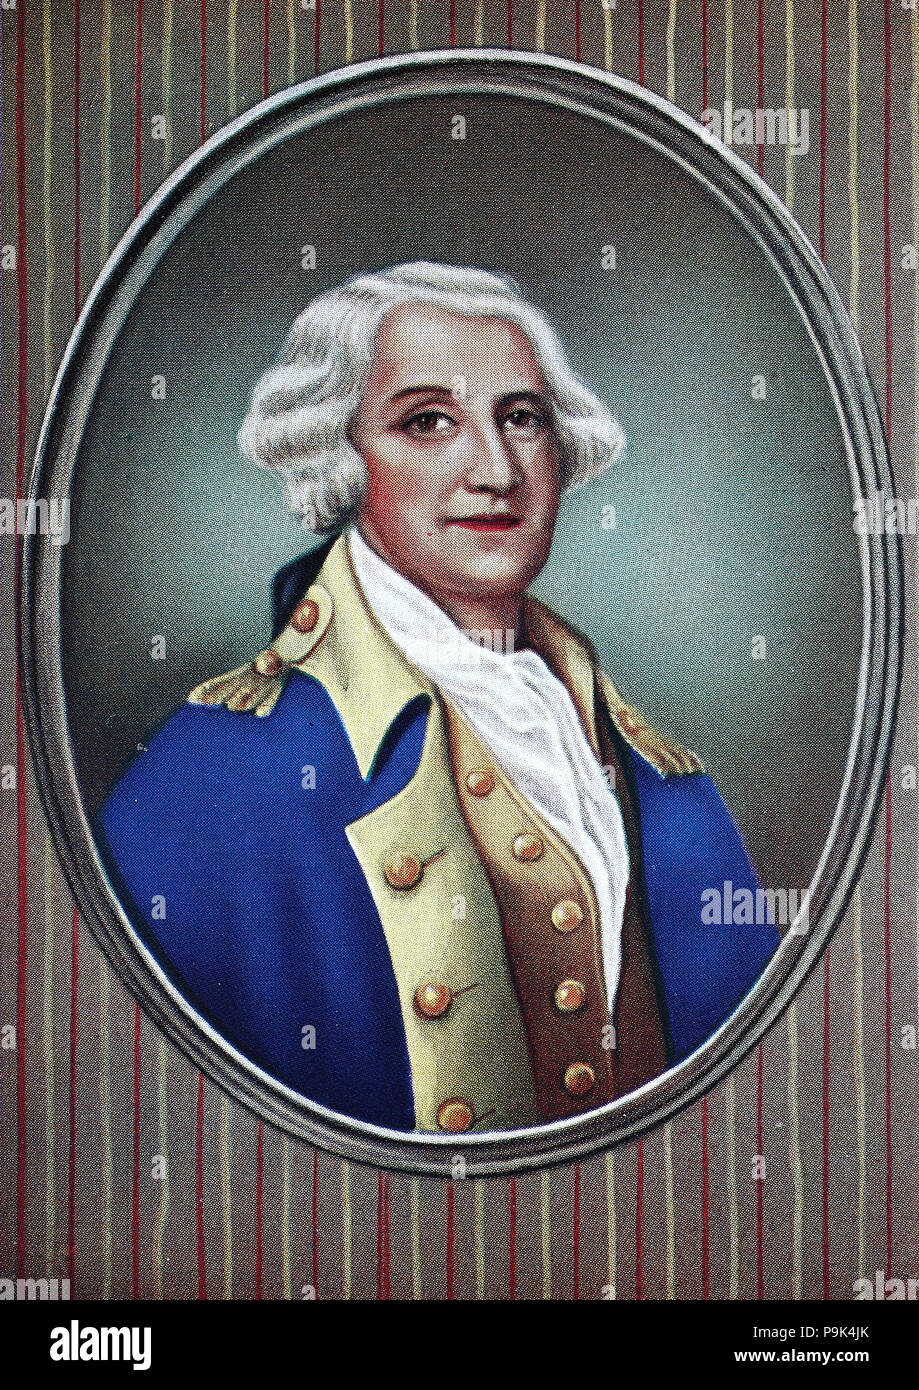 George Washington, February 22, 1732 – December 14, 1799, was an American soldier, farmer, land investor, politician, and statesman who served from 1789 to 1797 as the first President of the United States, and became known as the Father of His Country, digital improved reproduction of an original print from the year 1900 - Stock Image